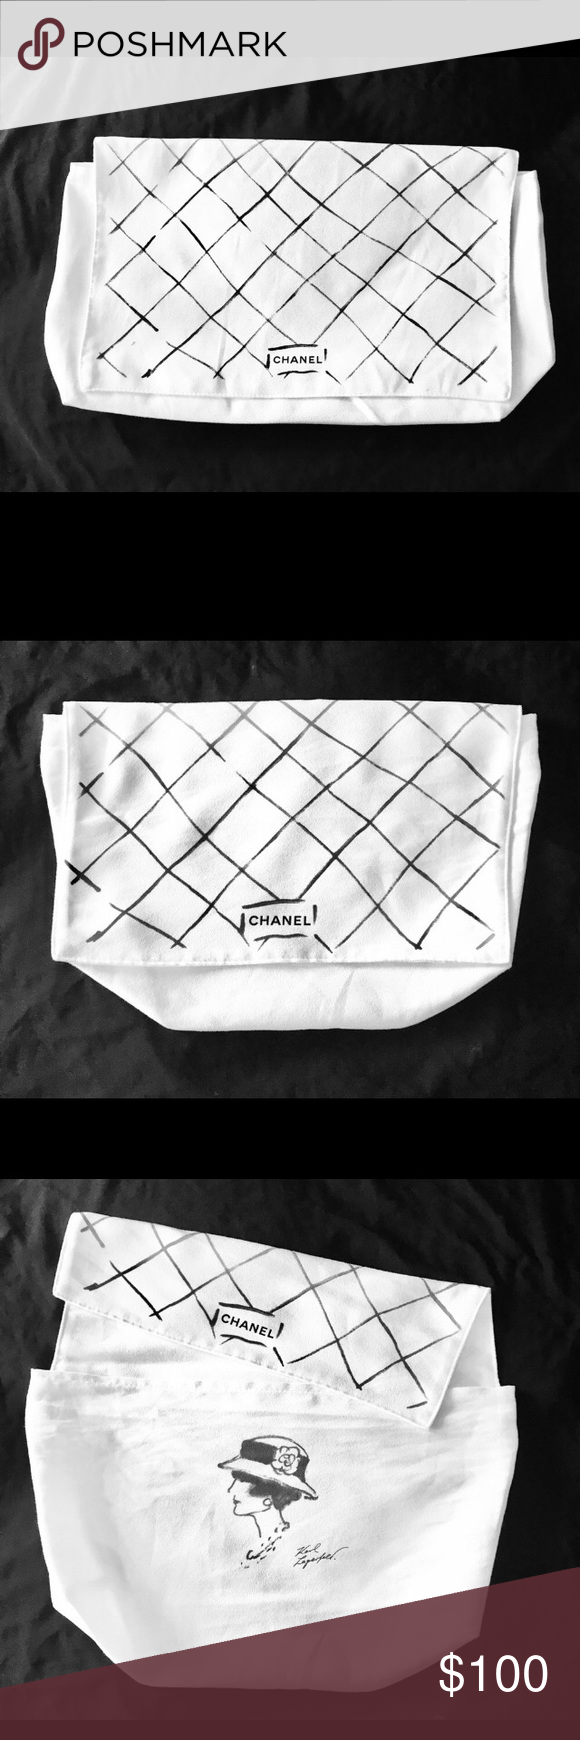 936e610c81c6 CHANEL 15 x 8 x 4 Karl Lagerfeld White Dustbag Chanel i100% Authentic White  Karl Lagerfeld Limited Edition Flap dustbag with extra top pocket for the  ...